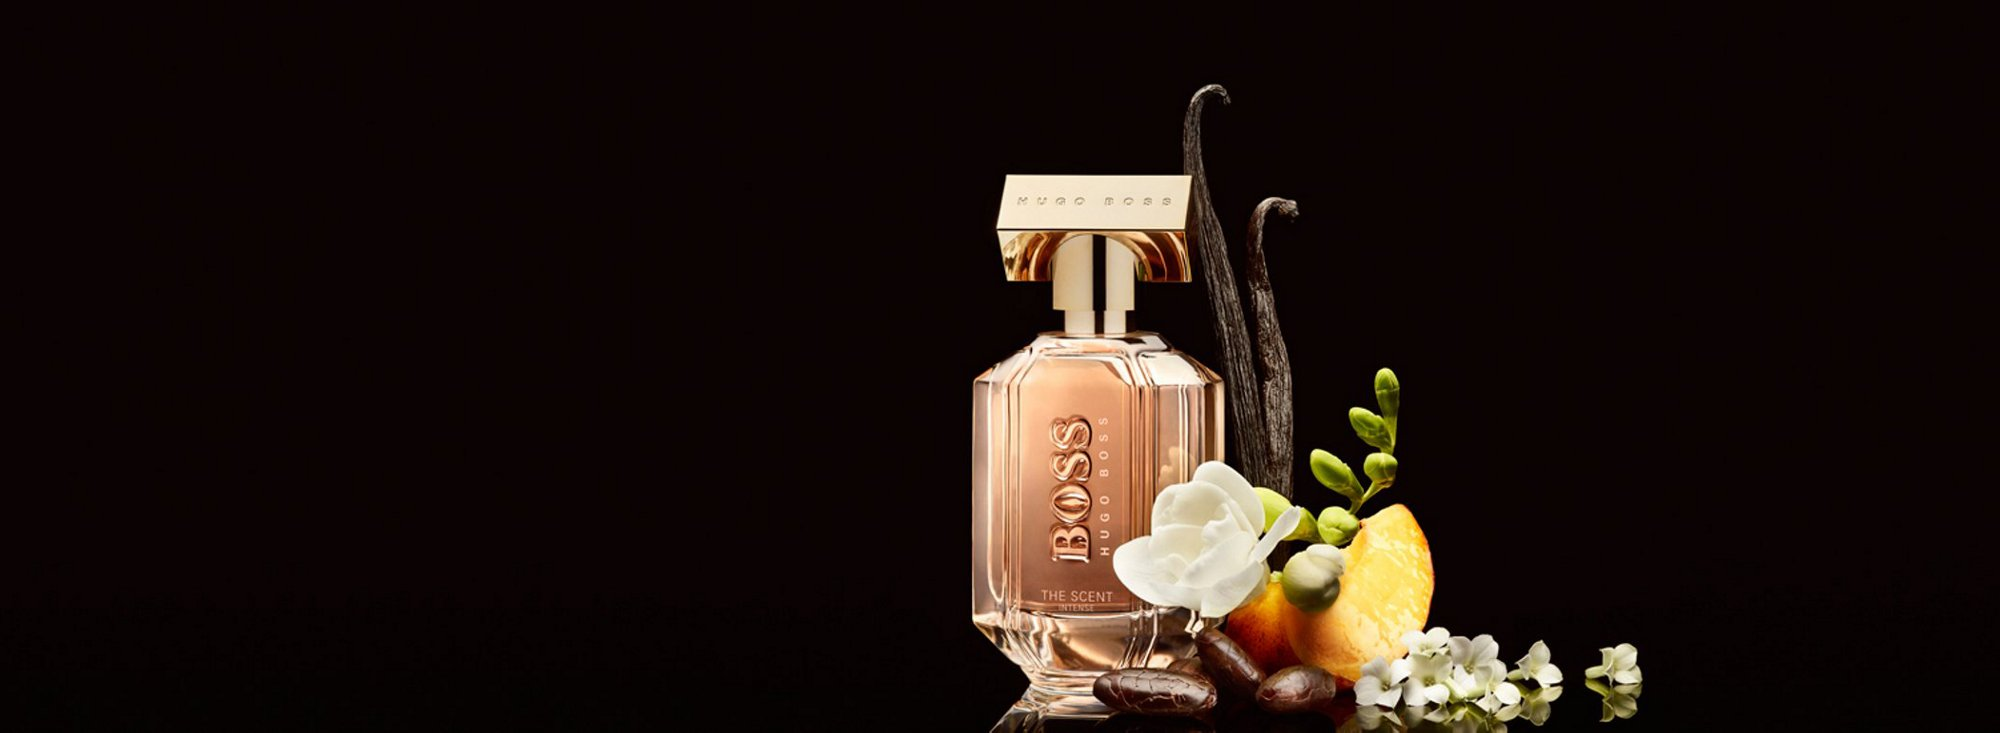 Image result for Perfumes for Men and Women: Finding Top Range for Each